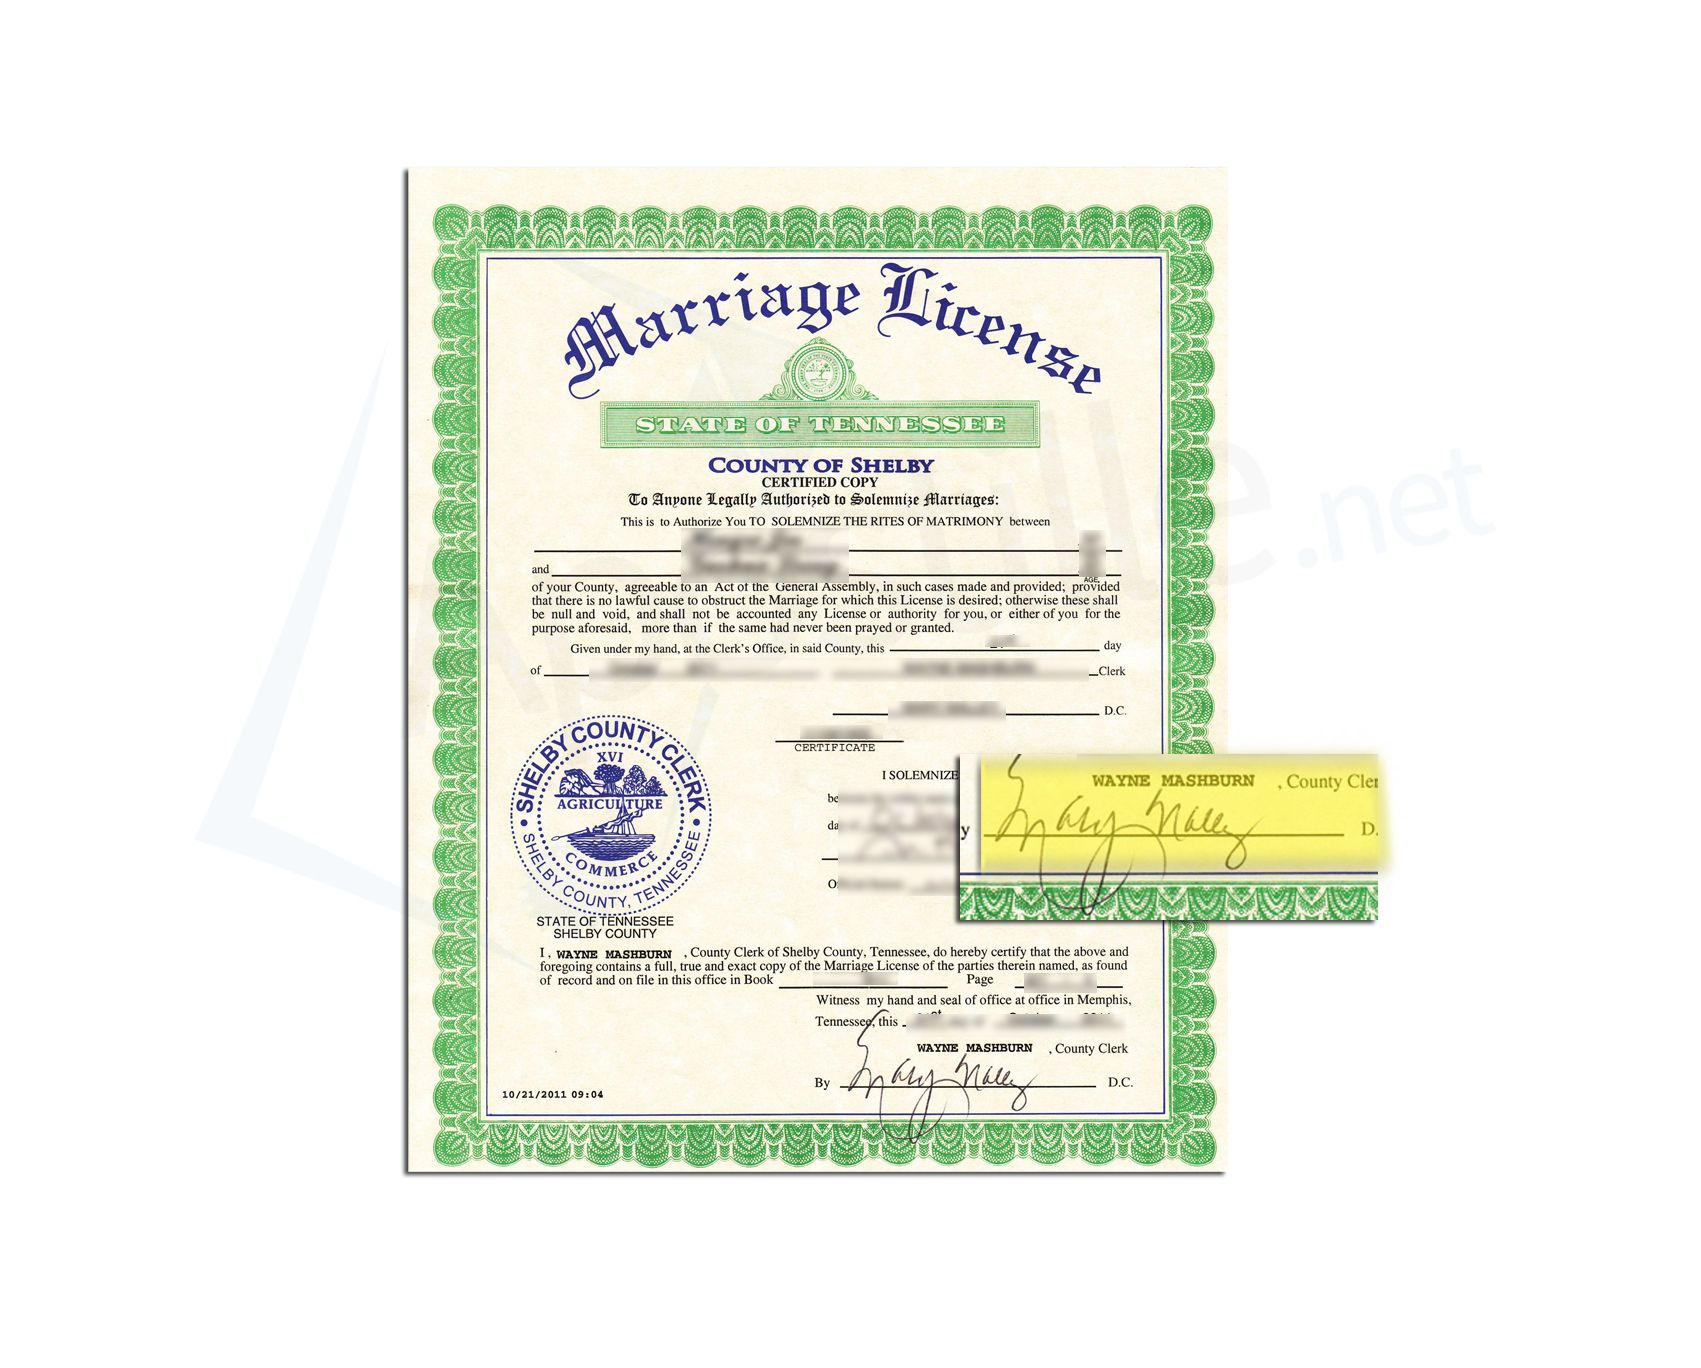 Free online marriage license lookup